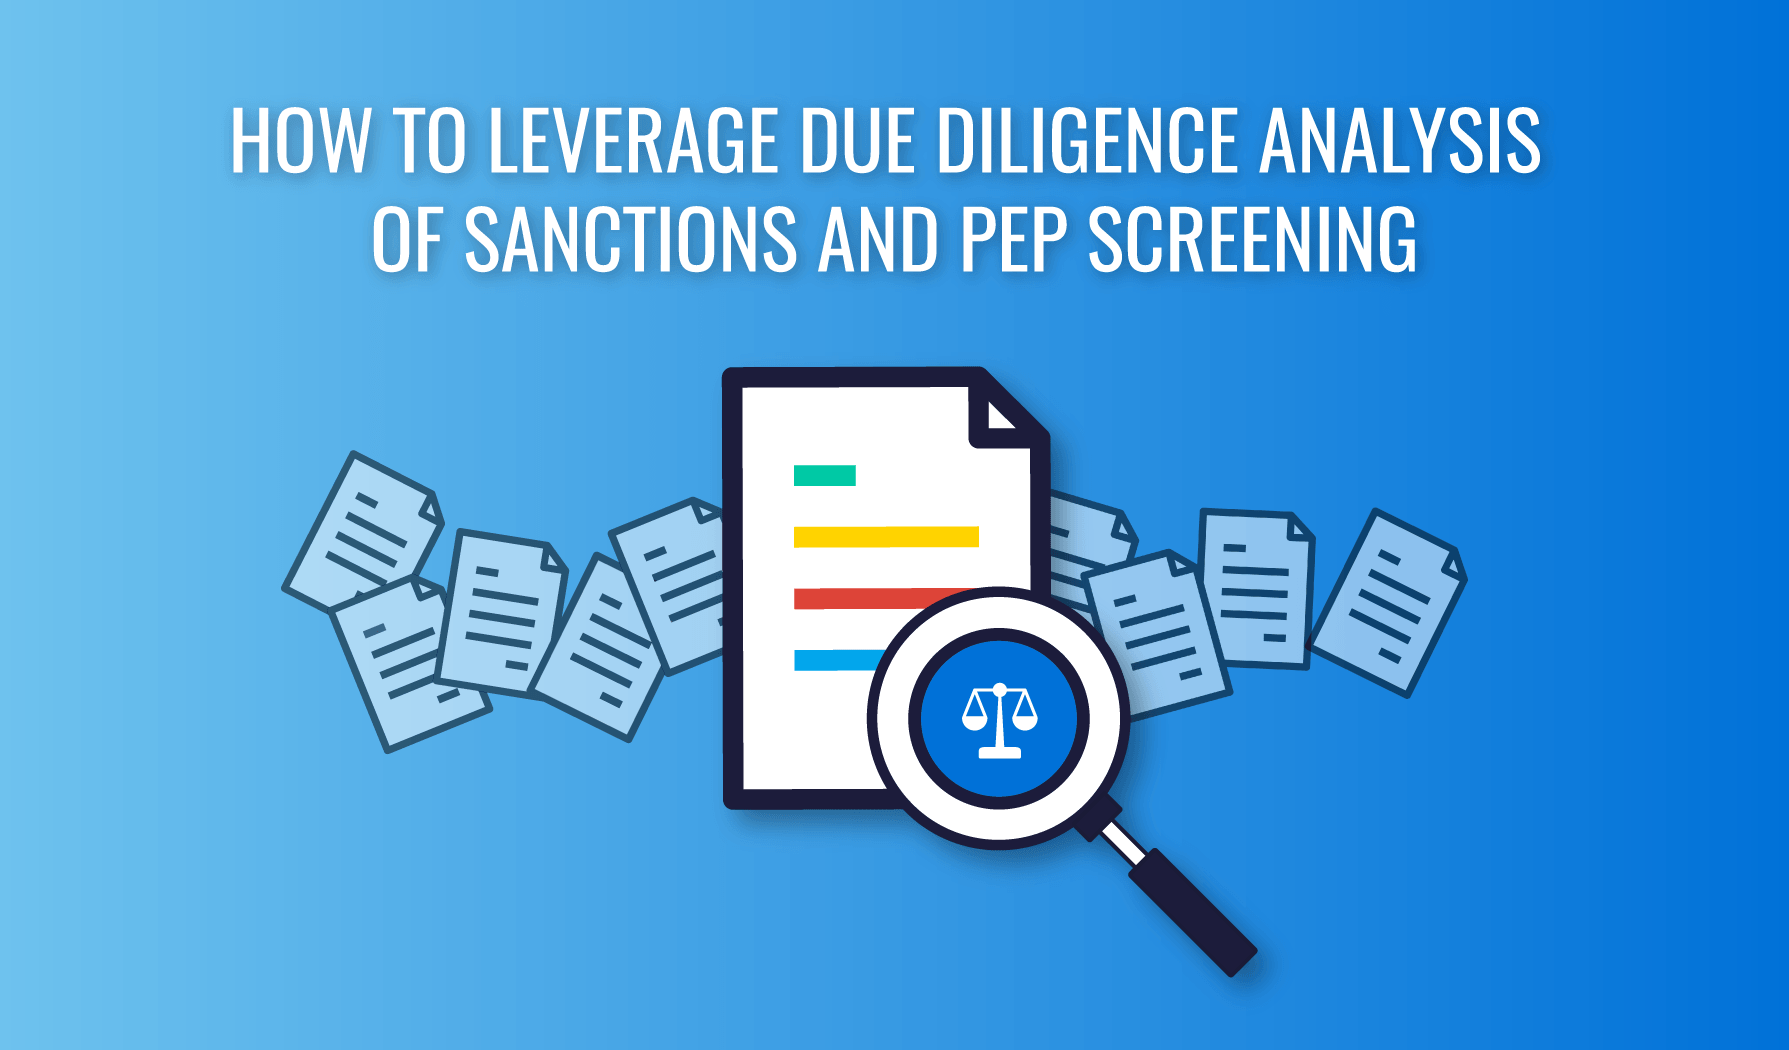 How To Leverage Due Diligence Analysis/Reviews Of Sanctions And Pep Screening